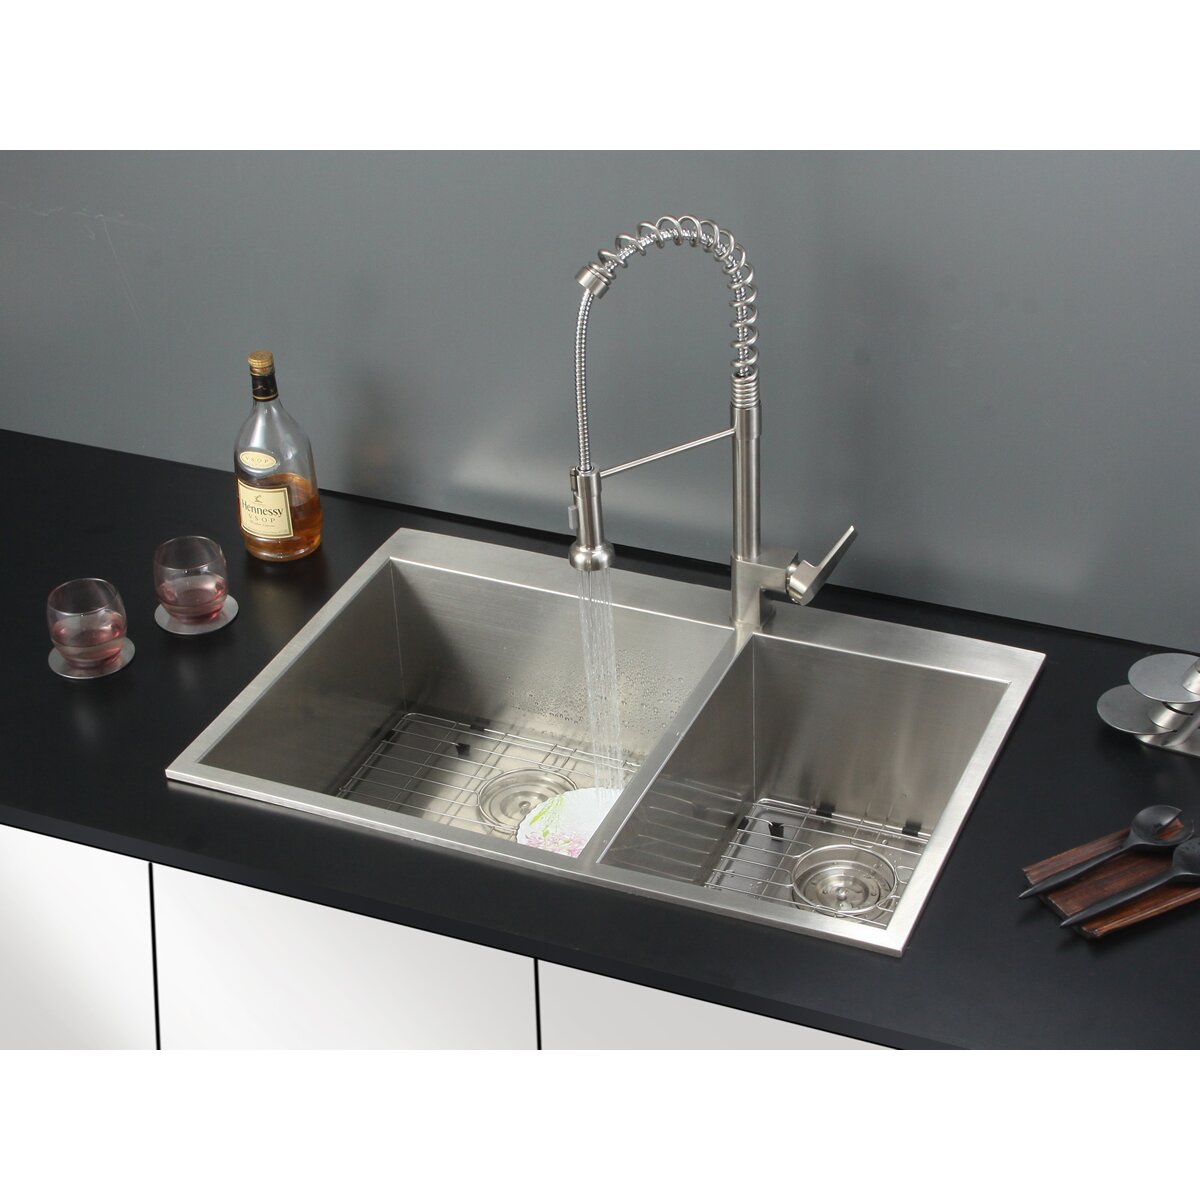 Ruvati 33 X 22 Drop In Kitchen Sink With Faucet